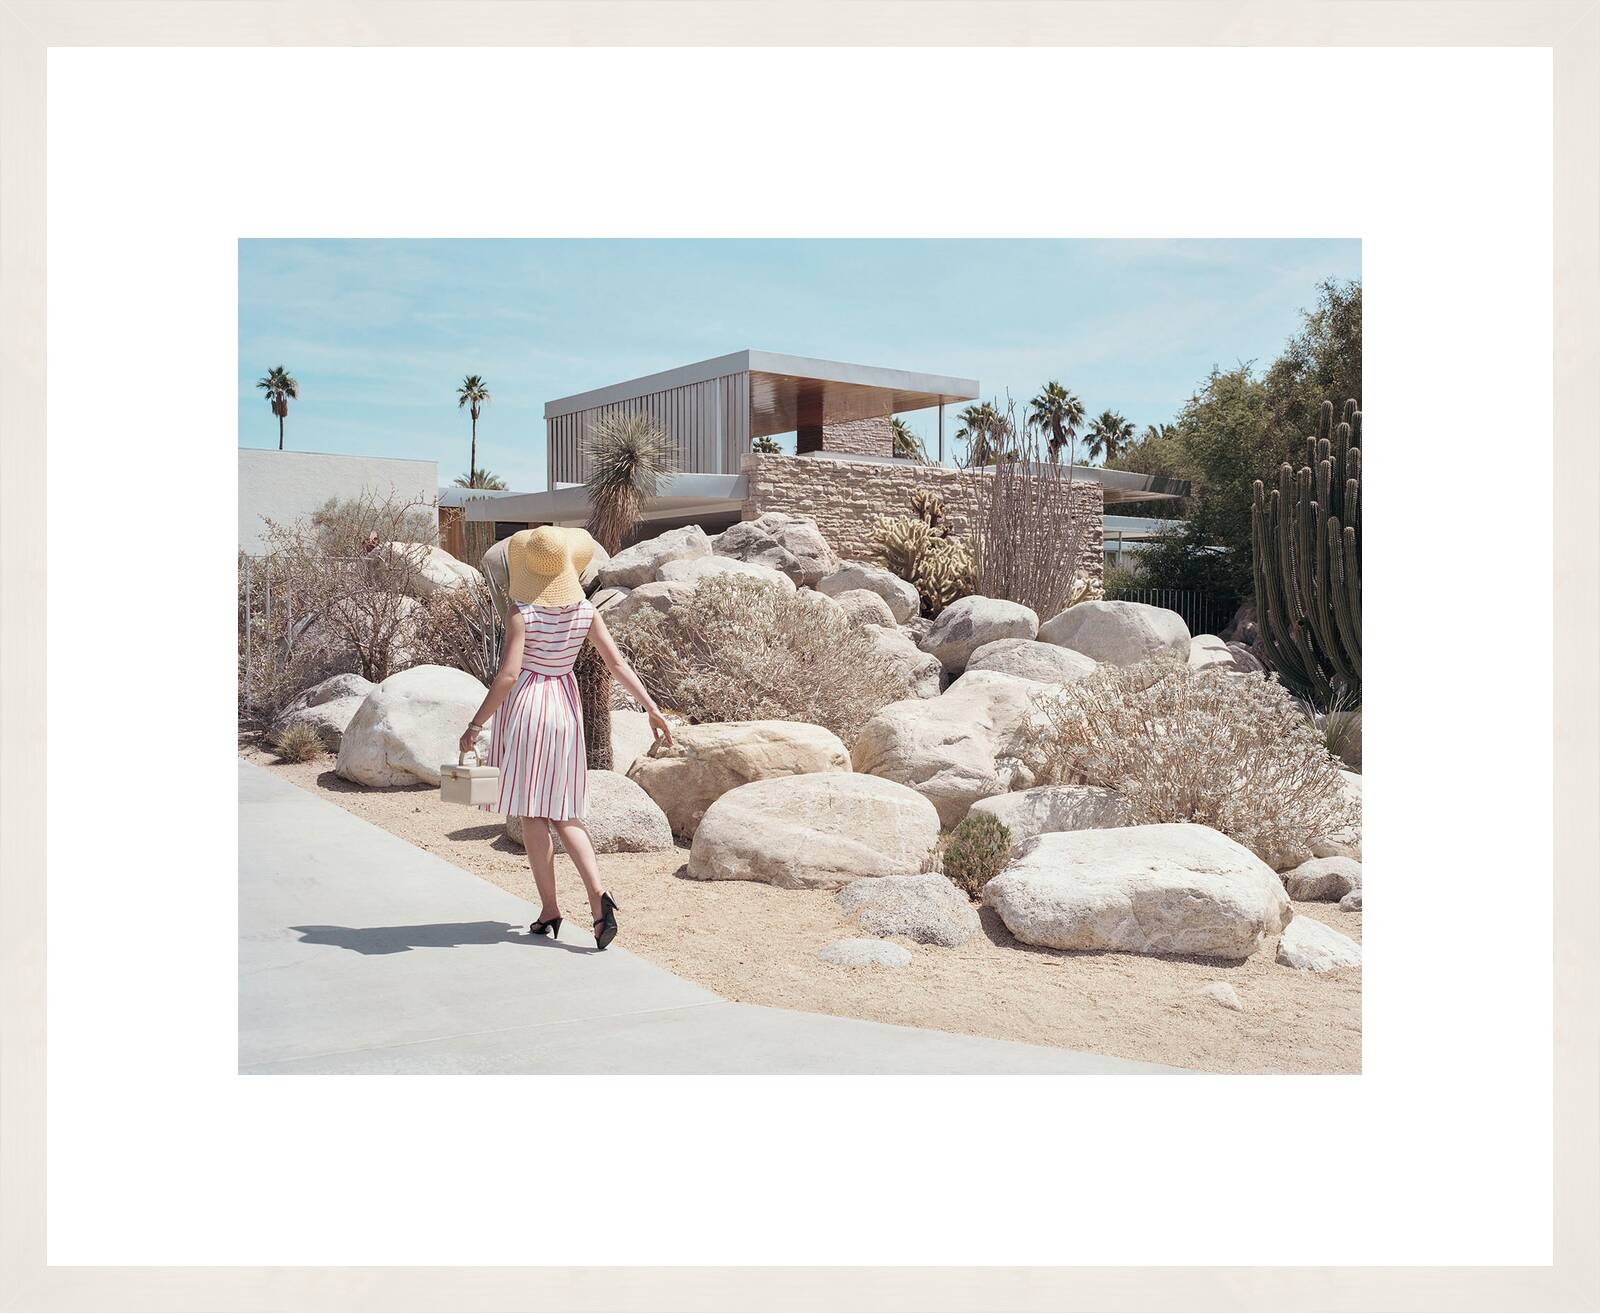 Kaufman House Richard Neutra FASHION PHOTOGRAPHY lumas gallery coupon code